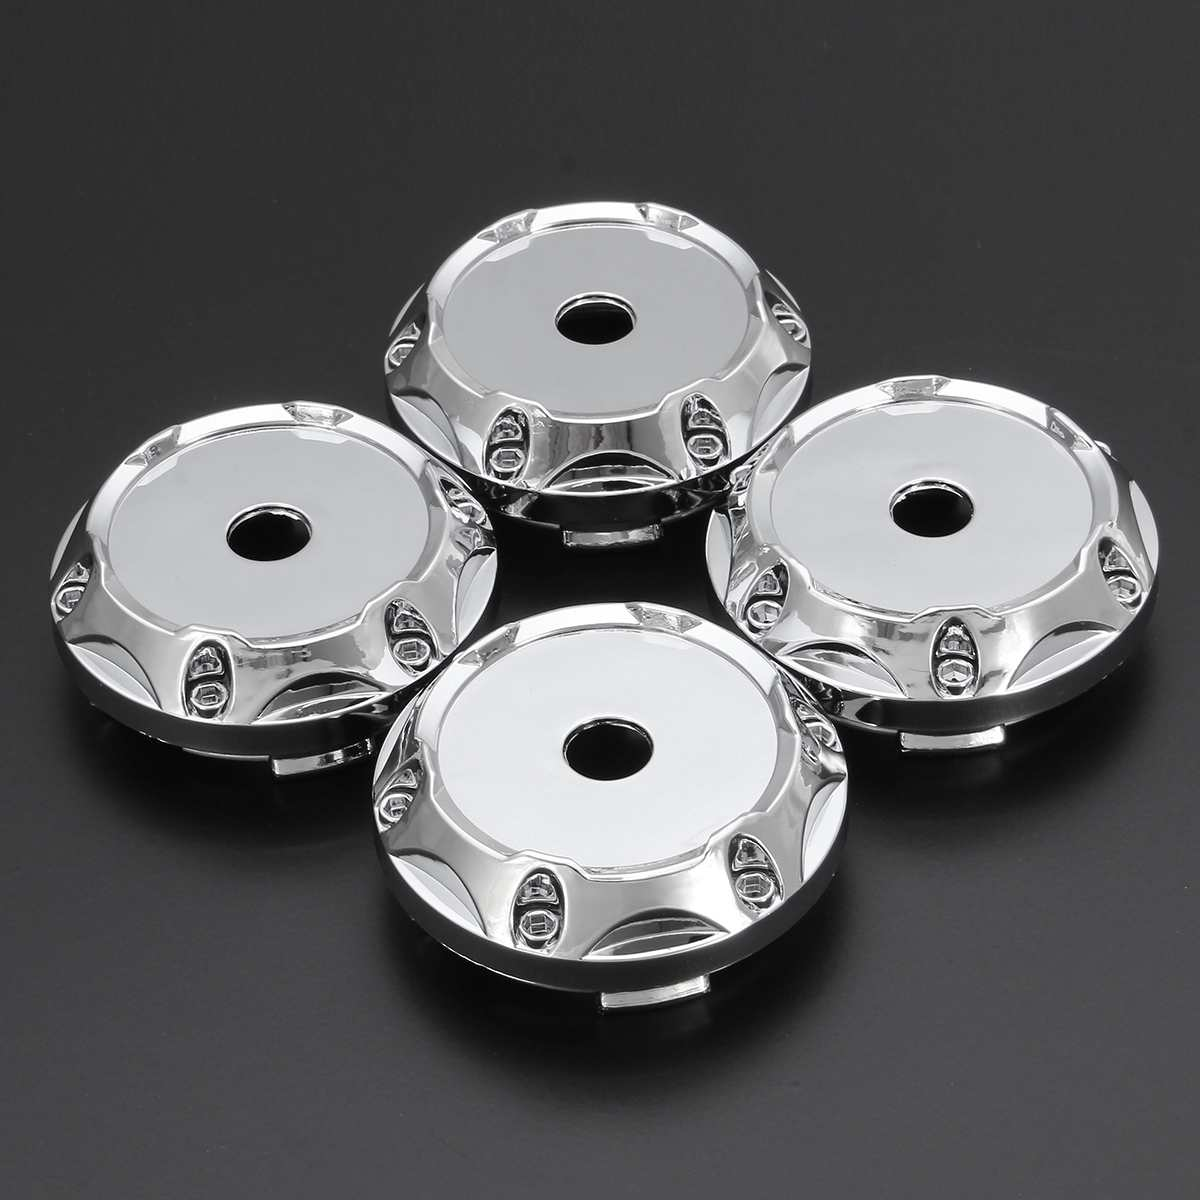 4Pcs a set 64mm Universal ABS Silver <font><b>Car</b></font> <font><b>Wheel</b></font> Center <font><b>Hub</b></font> Caps <font><b>Covers</b></font> Set No Logo TW image